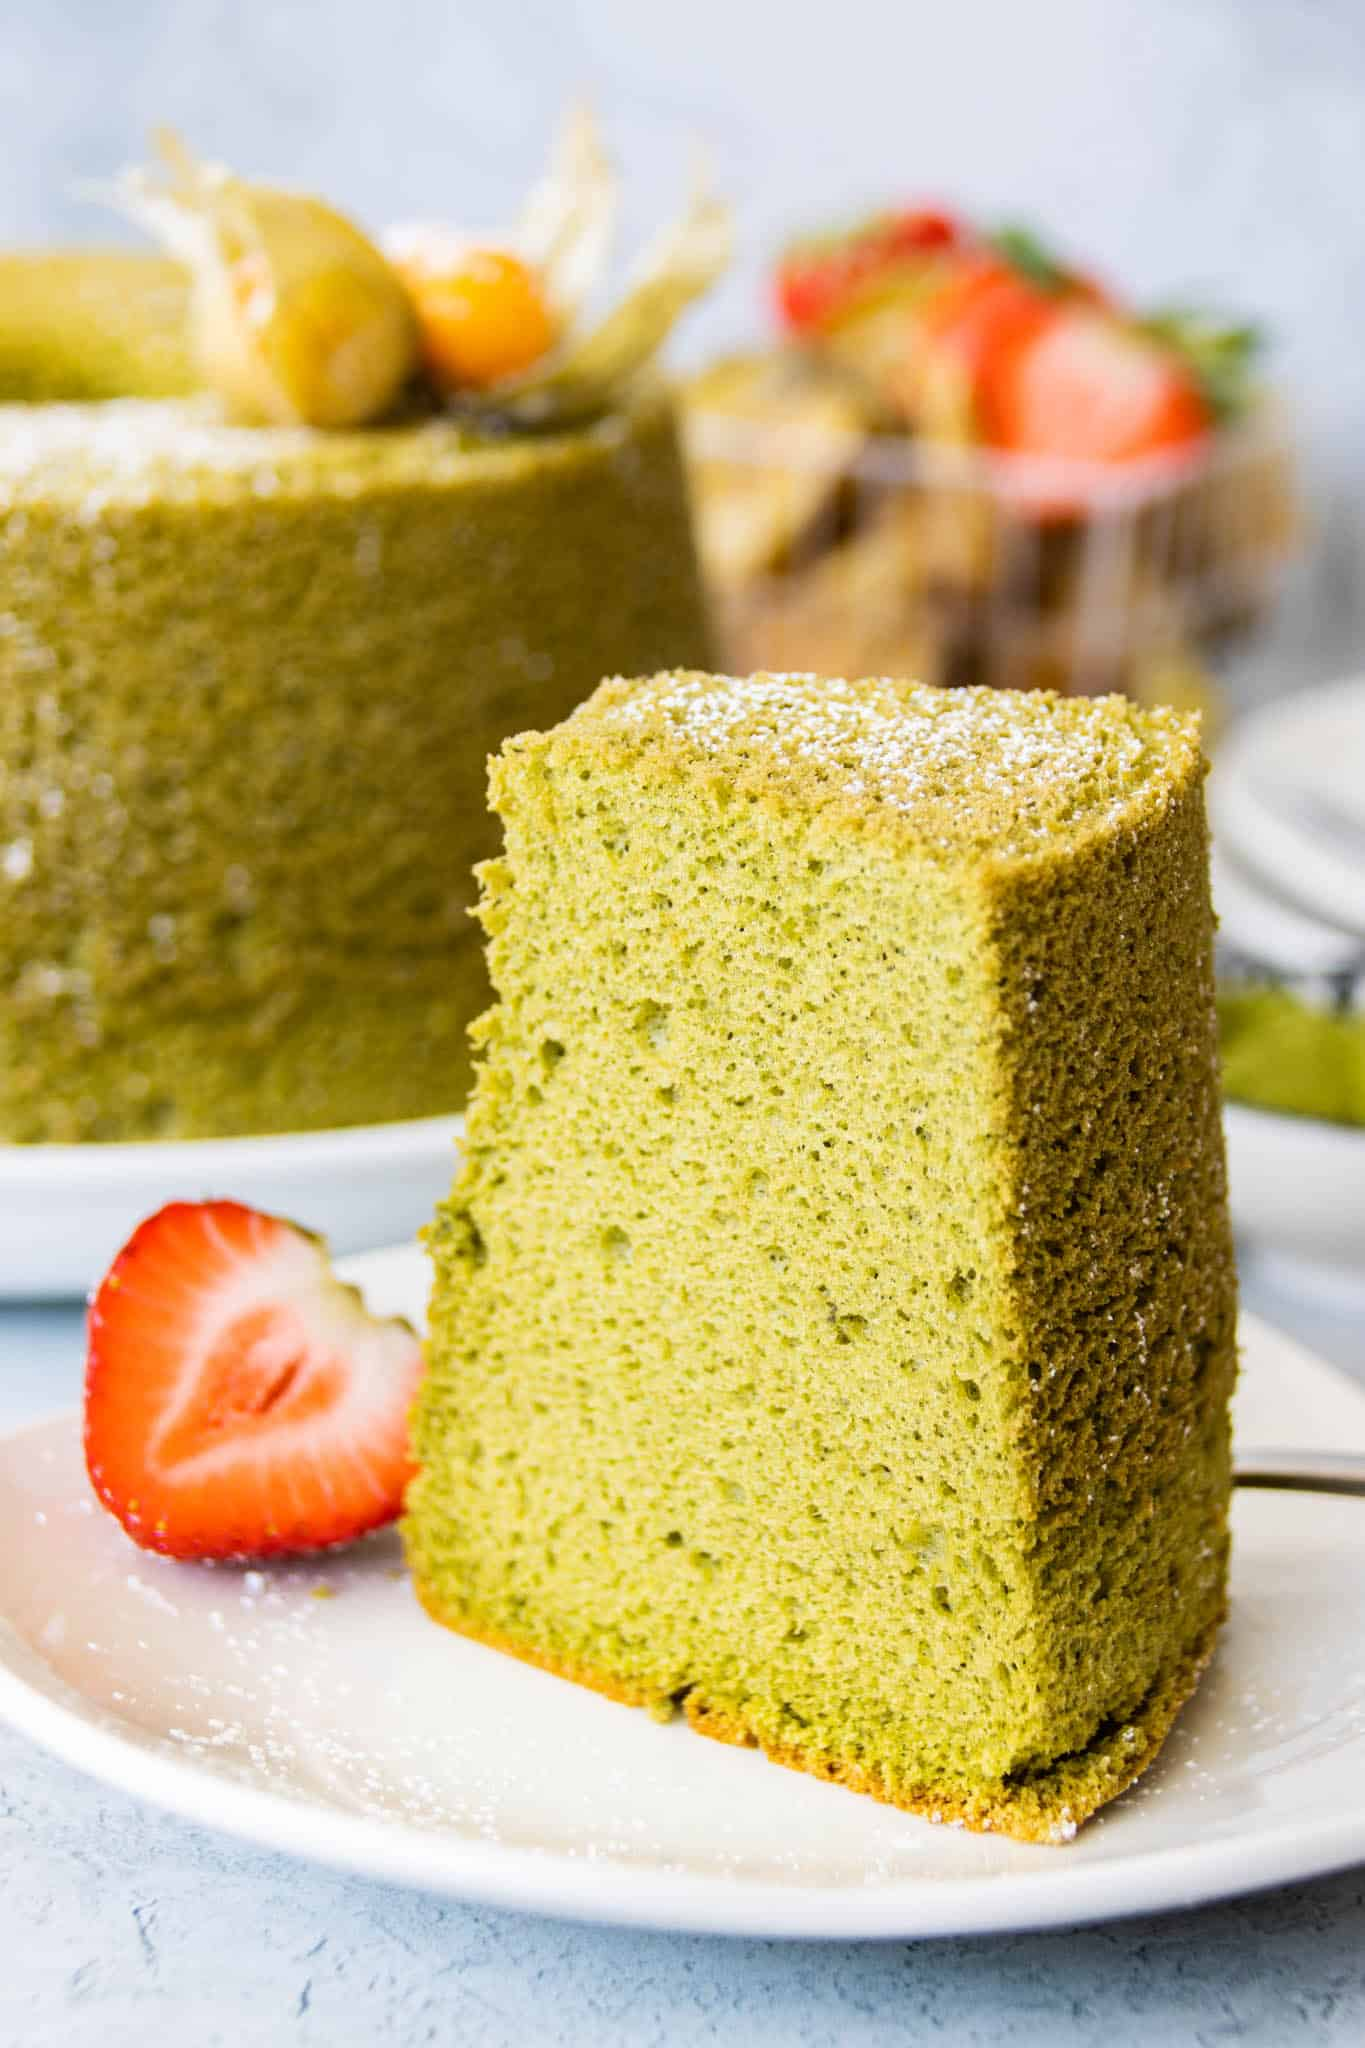 A slice of matcha (green tea) chiffon cake with a light dusting of confectioner's sugar and strawberry slice on a plate